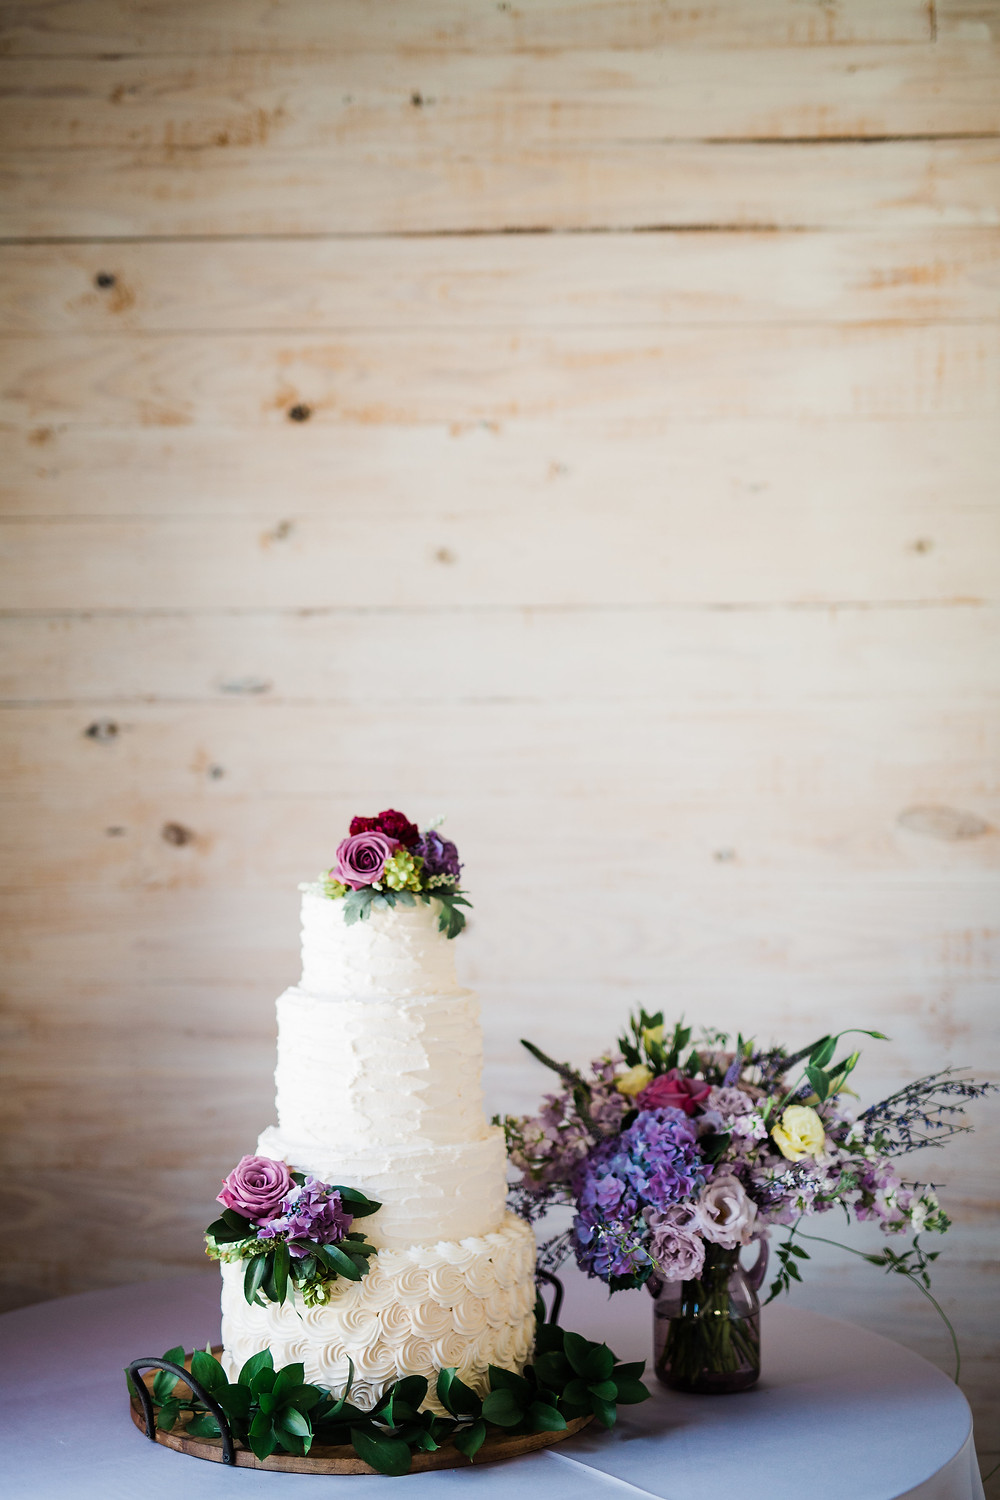 Cake Image by Lauren Crose Photography